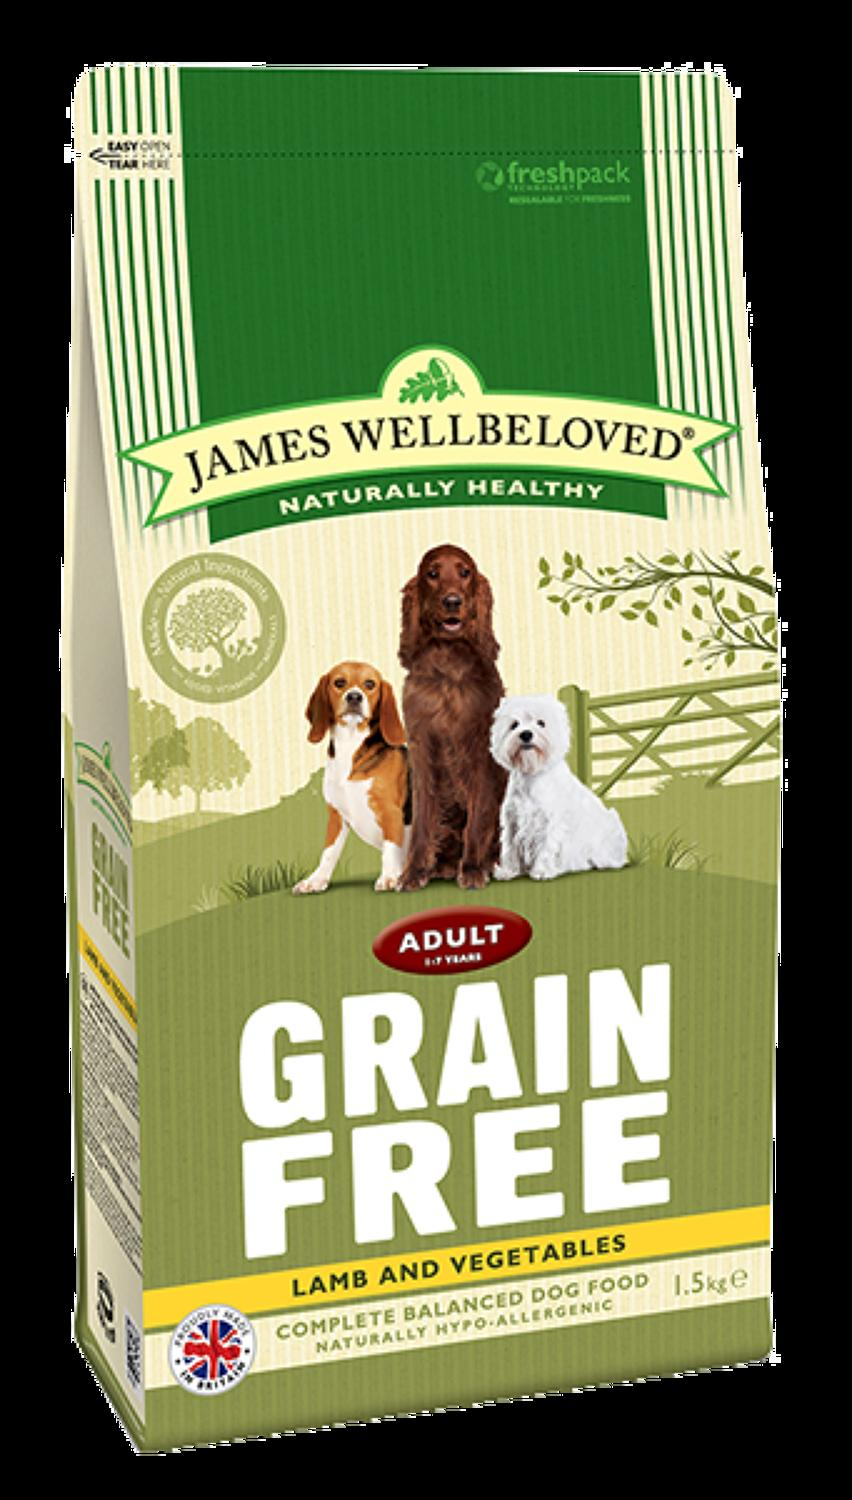 James Wellbeloved Adult Lamb & Veg 1.5kg